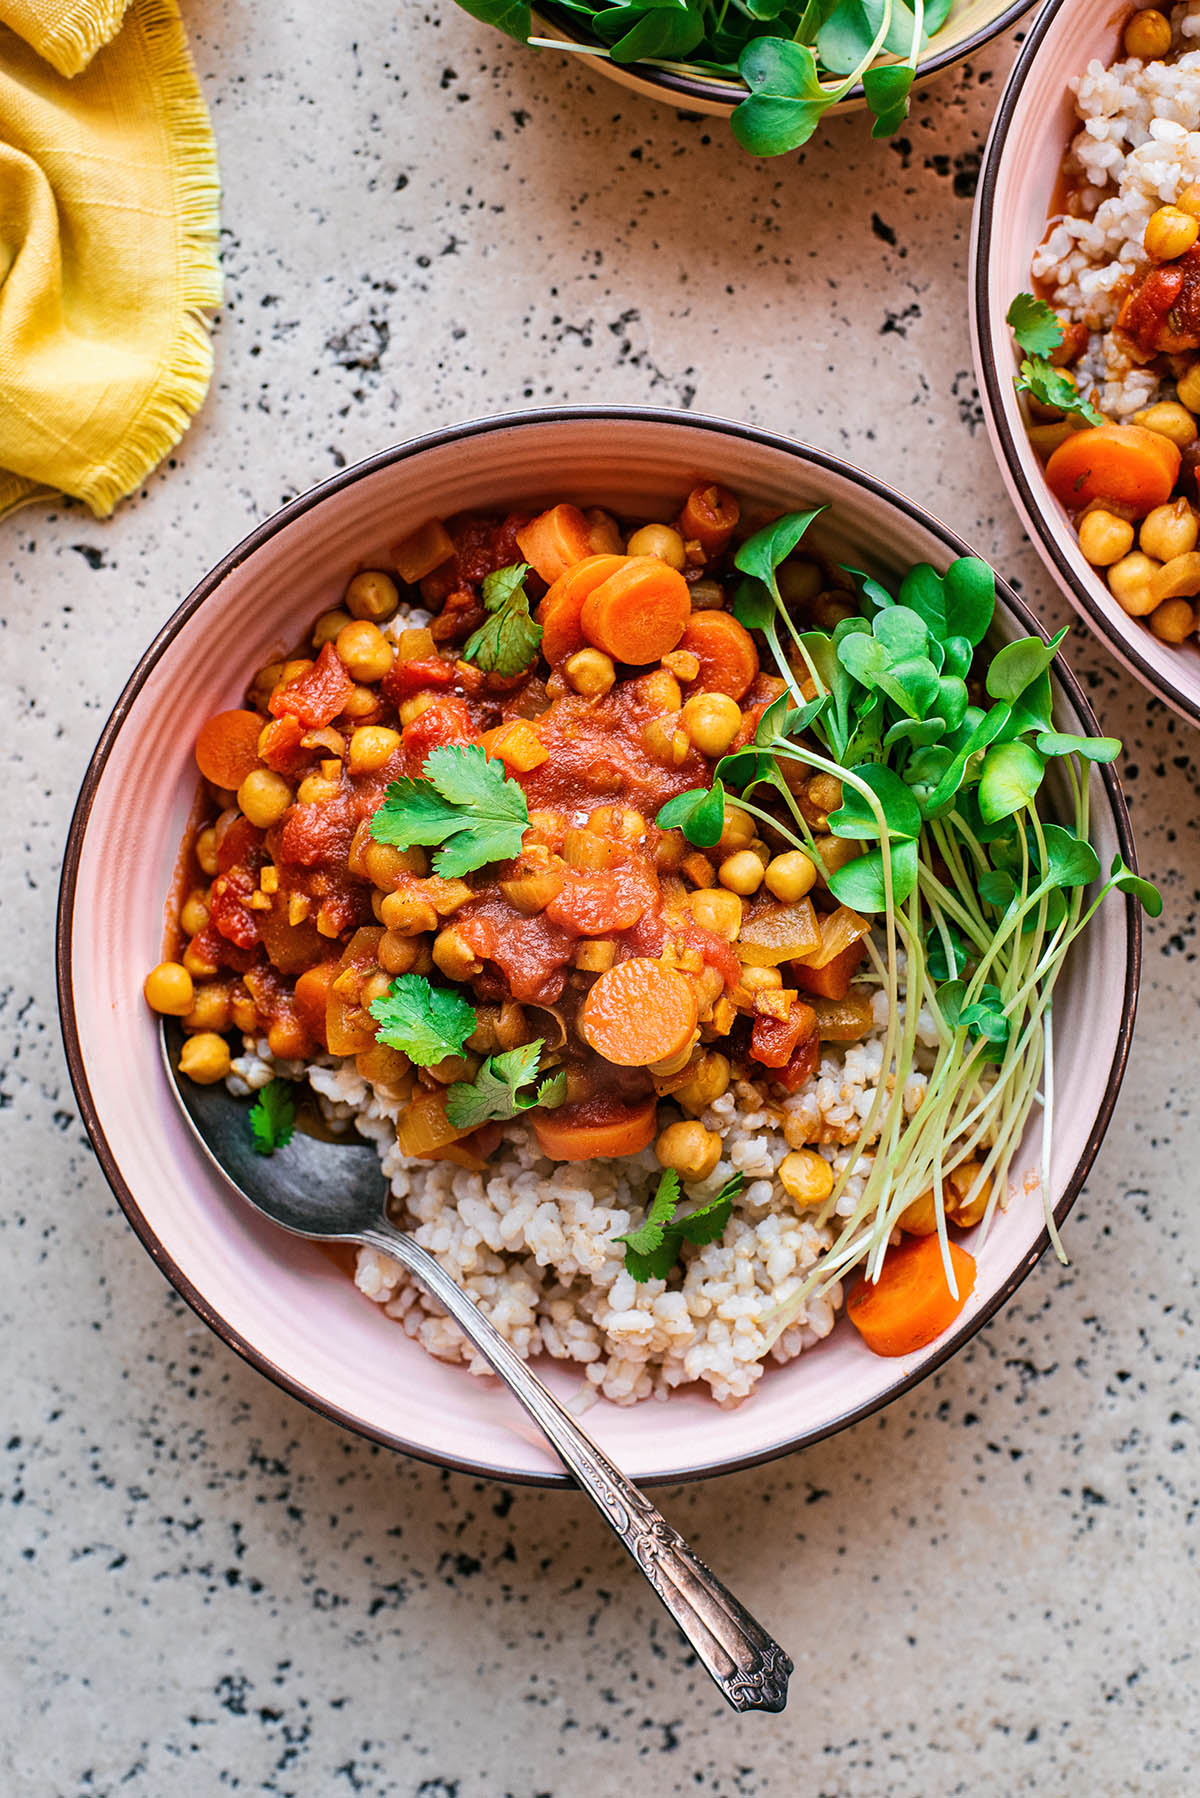 Chickpea carrot stew with rice and radish sprouts in a pink bowl.